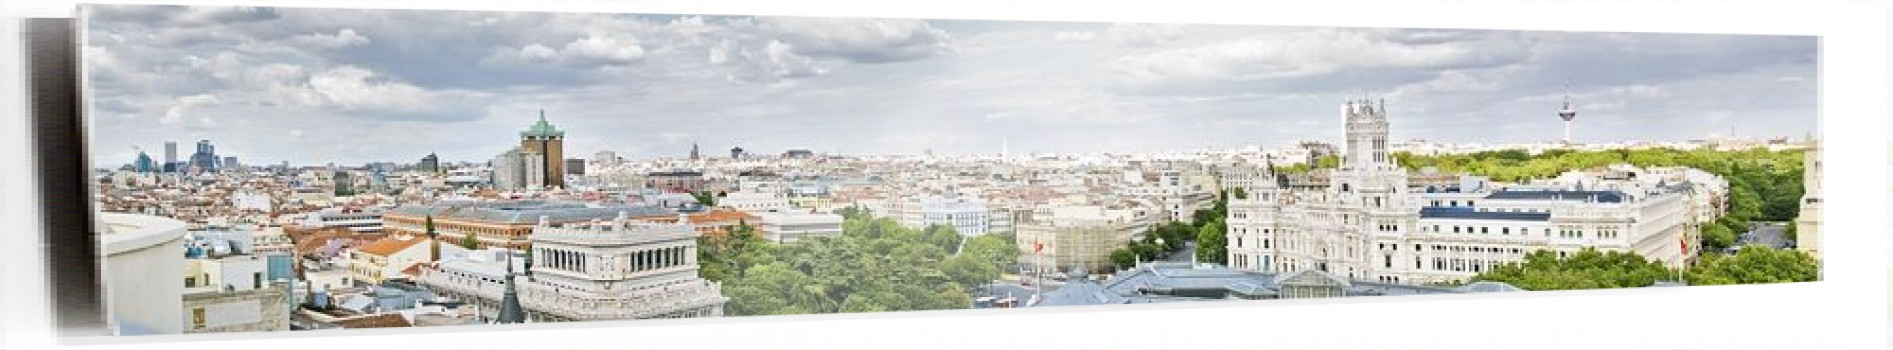 madrid_panoramica_muralesyvinilos_34249044__Monthly_L.jpg